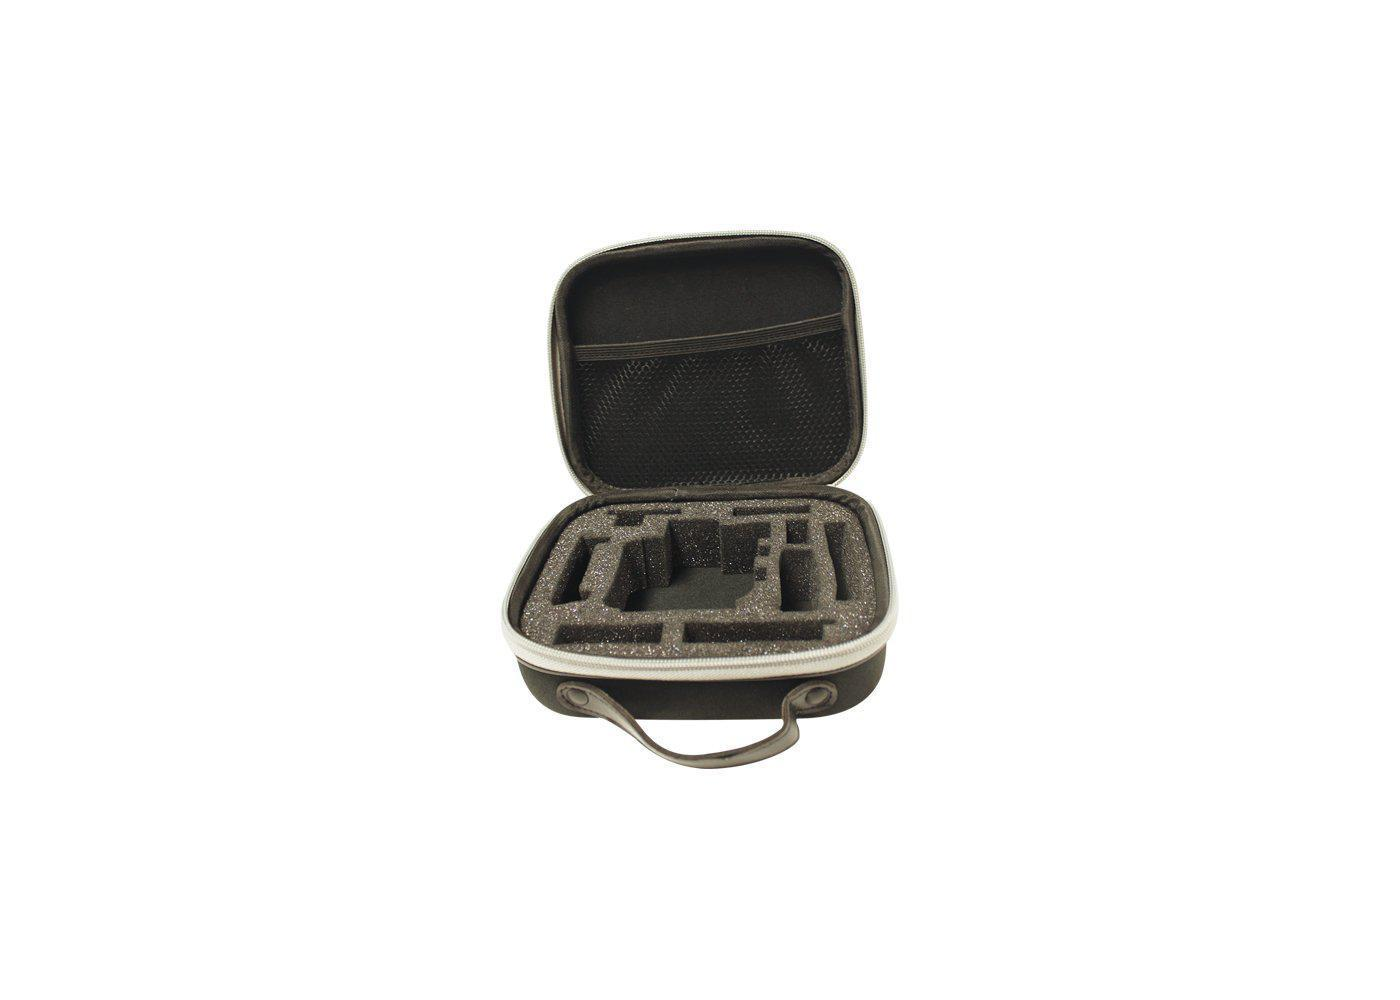 WASPcam Camera Travel Case - cobra.com